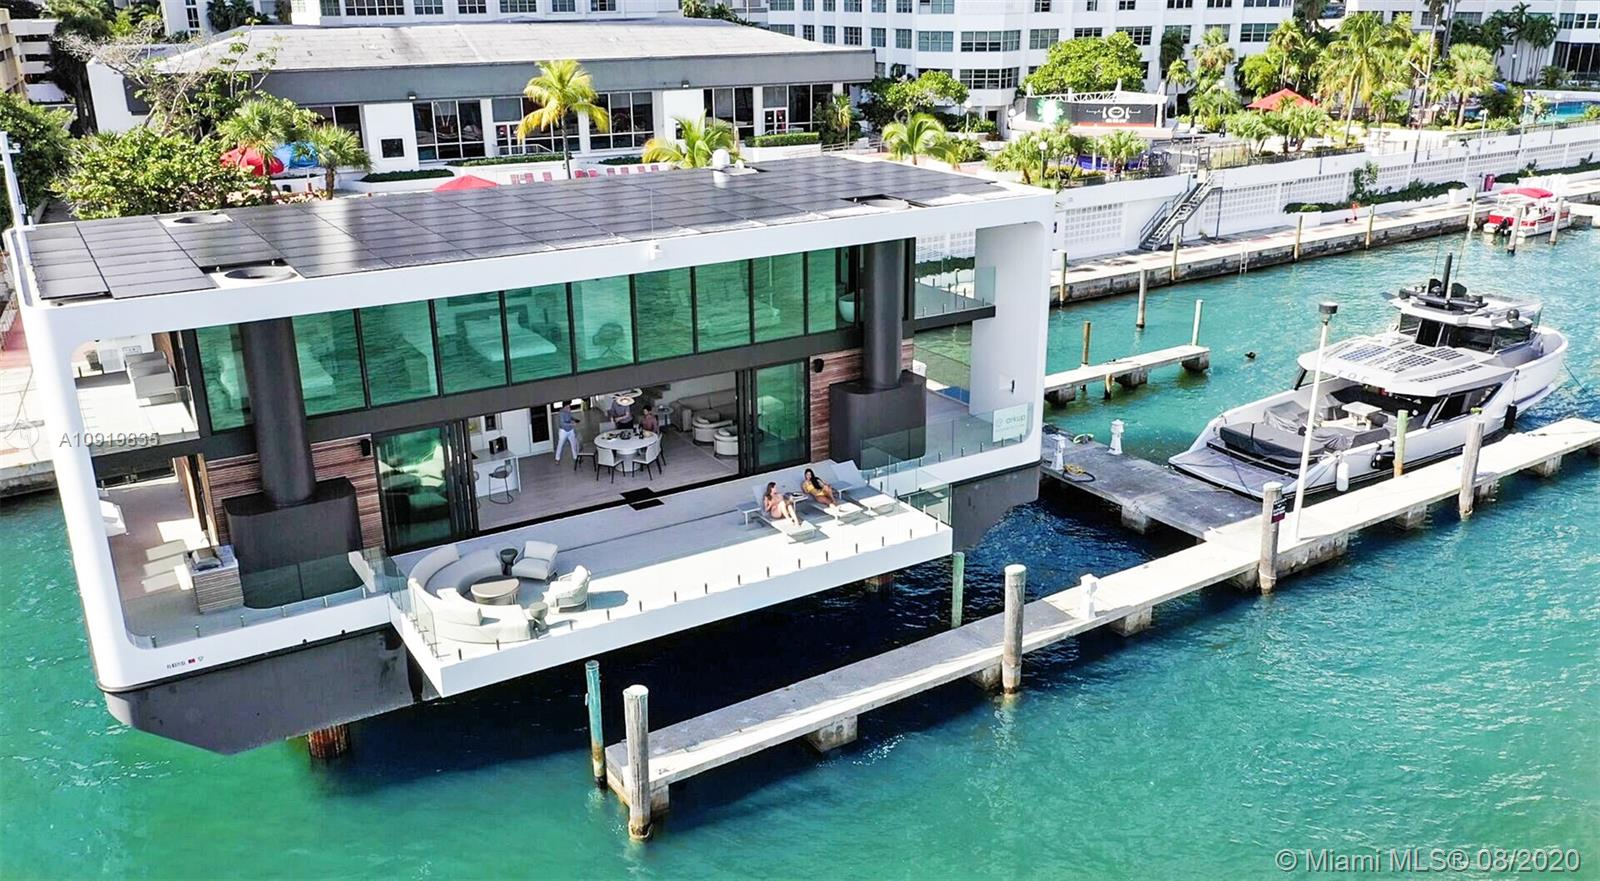 ARKUP - GROUP OWNERSHIP OPPORTUNITY! Incredible chance to own a piece of The Arkup at a fraction of it's cost. Call listing agent for details. Immaculate mansion on the water in Brickell! Located at the lavish Vice City Marina just steps from Miami's 5-star dining & nightlife, this is the only property of its kind. A blend of a modern Miami mansion & a mega-yacht, the Arkup allows you to live on the water and bask in everything Miami has to offer without paying property taxes, condo dues, an electric bill or a water bill. Sporting 4,350 square ft of perfectly curated indoor & outdoor space & built on retractable legs that elevate the mansion out of the water or cruise like a yacht to any of Miami's hot spots, the Arkup is absolutely unmatched for wow-factor, luxury, privacy & convenience.